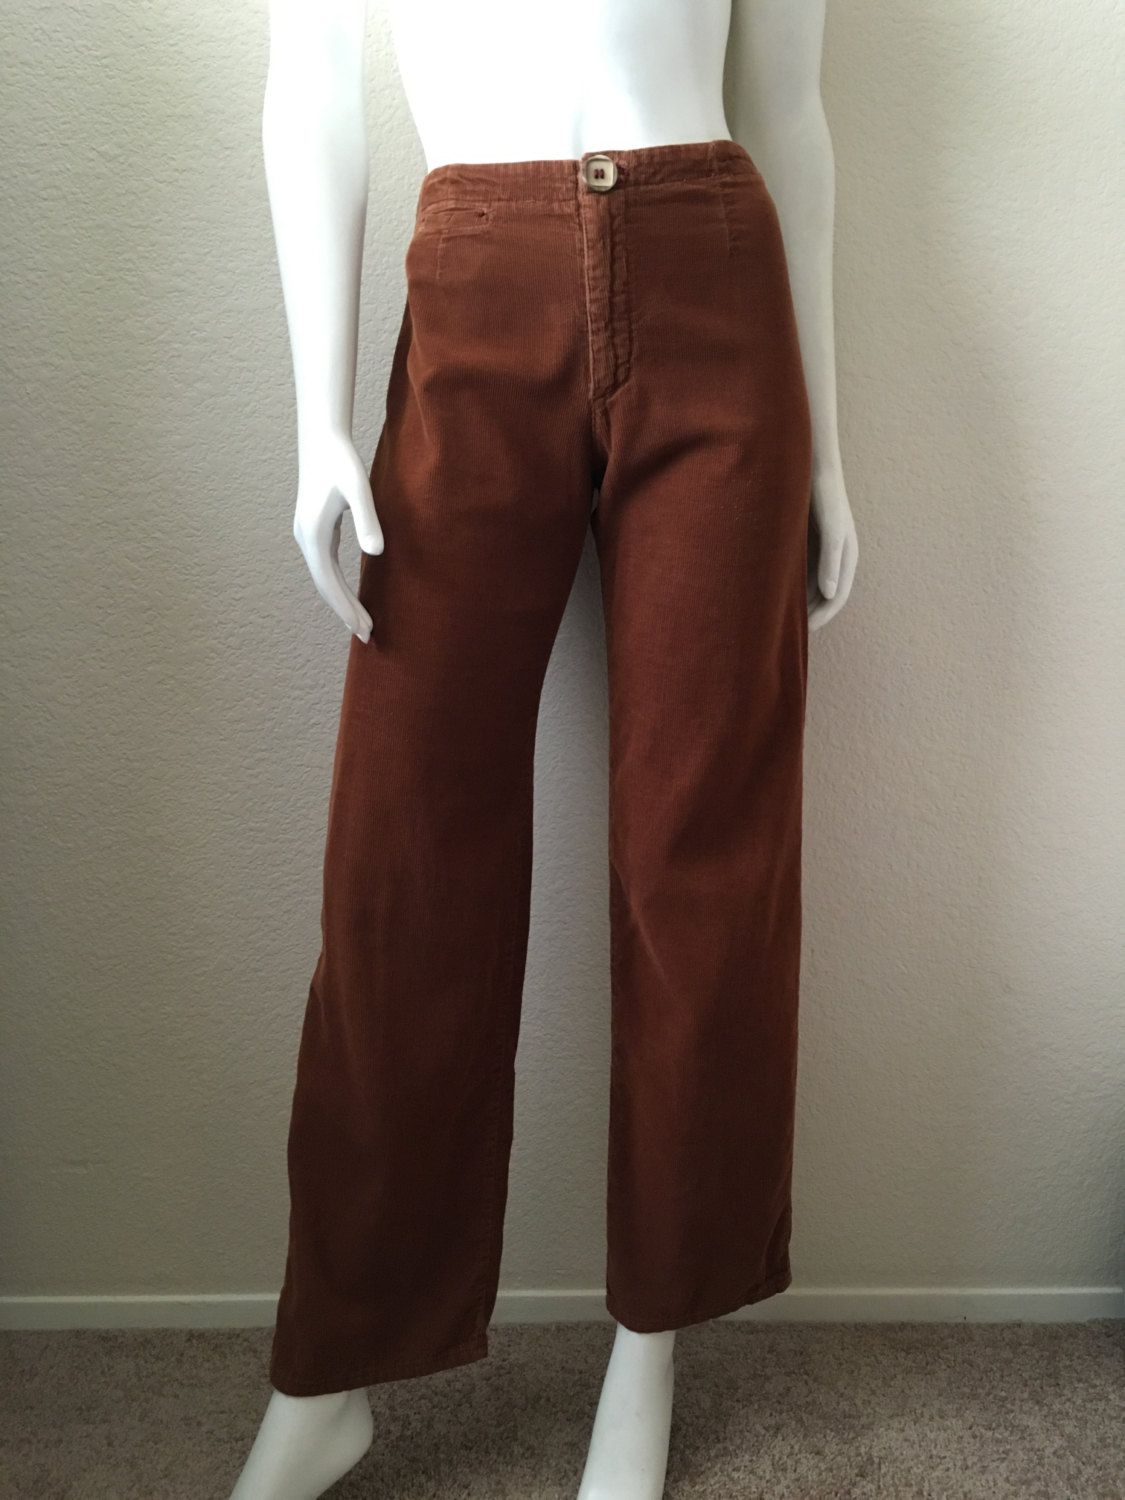 fe26c9b380 Vintage Women's 90's Corduroy Pants, High Waisted, Brown, Wide Leg by Rusty  (S/M) by Freshandswanky on Etsy